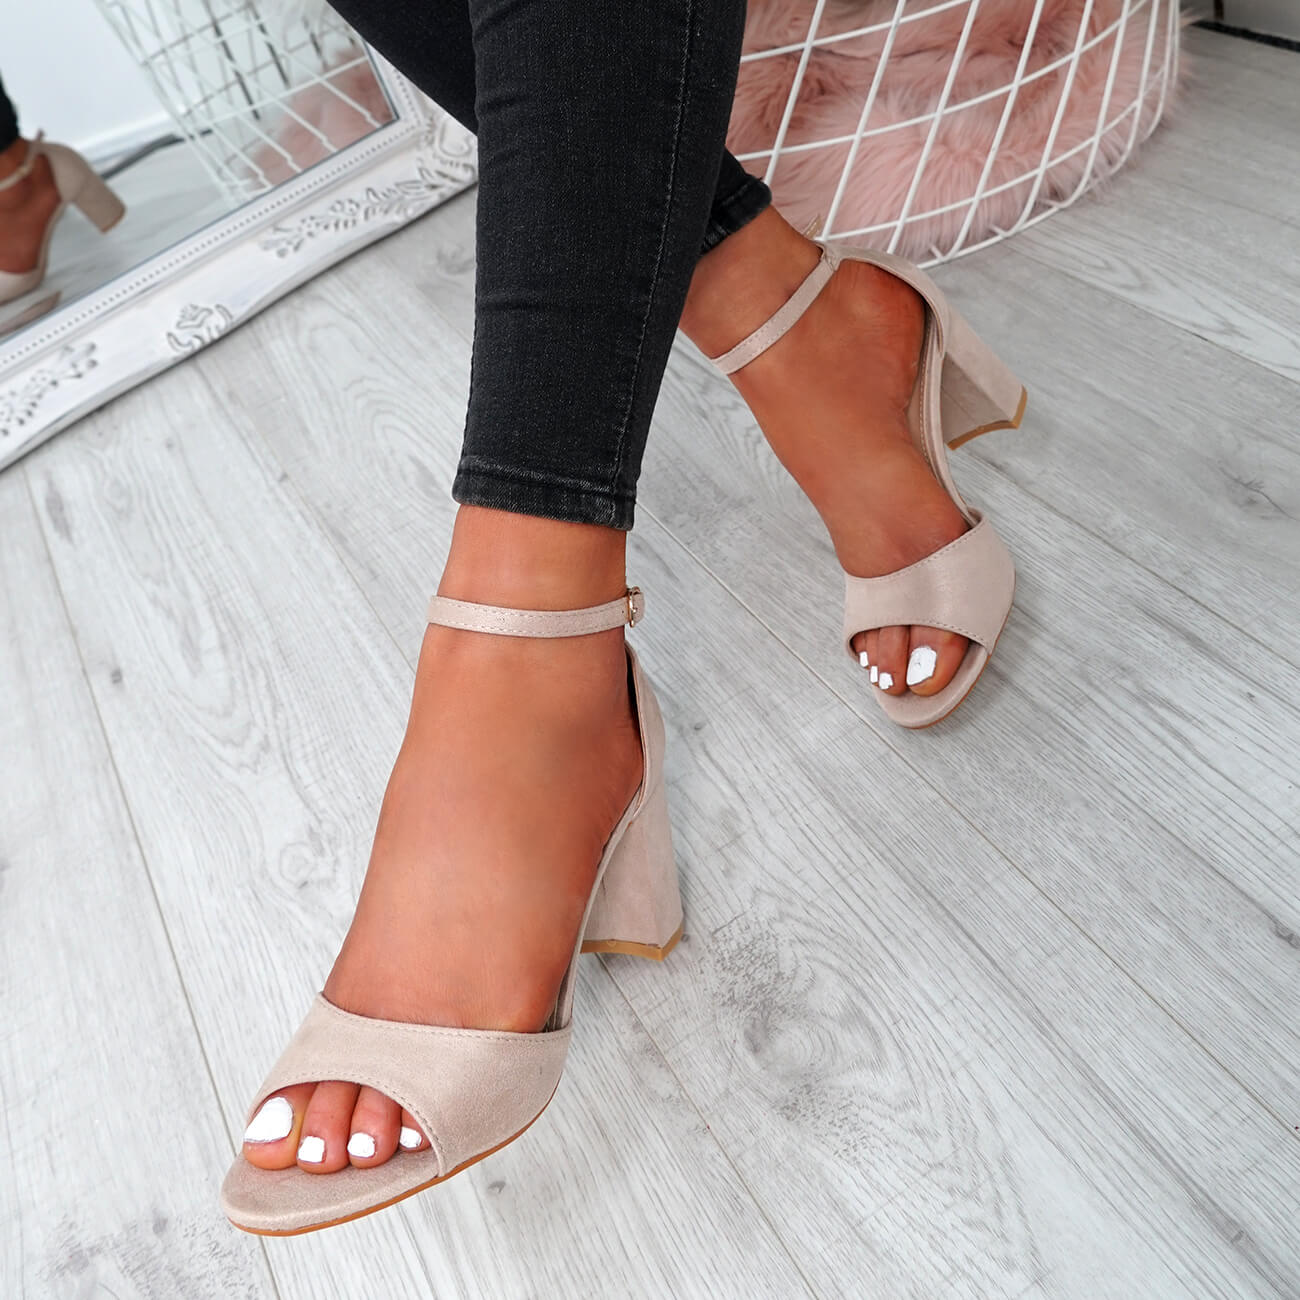 WOMENS-LADIES-ANKLE-STRAP-HIGH-BLOCK-HEEL-SANDALS-PEEP-TOE-PARTY-SHOES-SIZE thumbnail 9